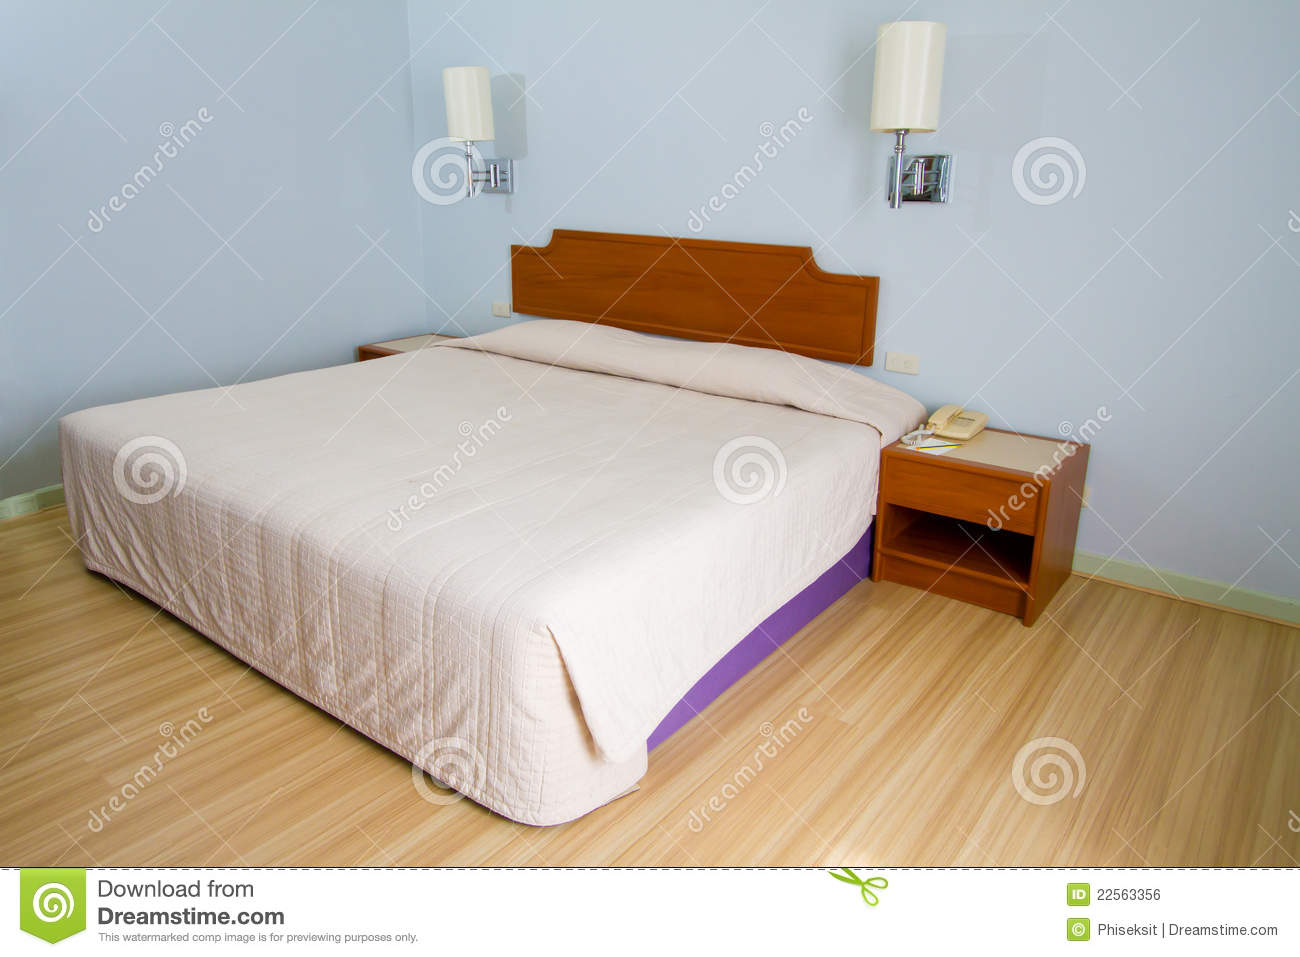 Bed room royalty free stock image image 22563356 for Sofa bed thailand